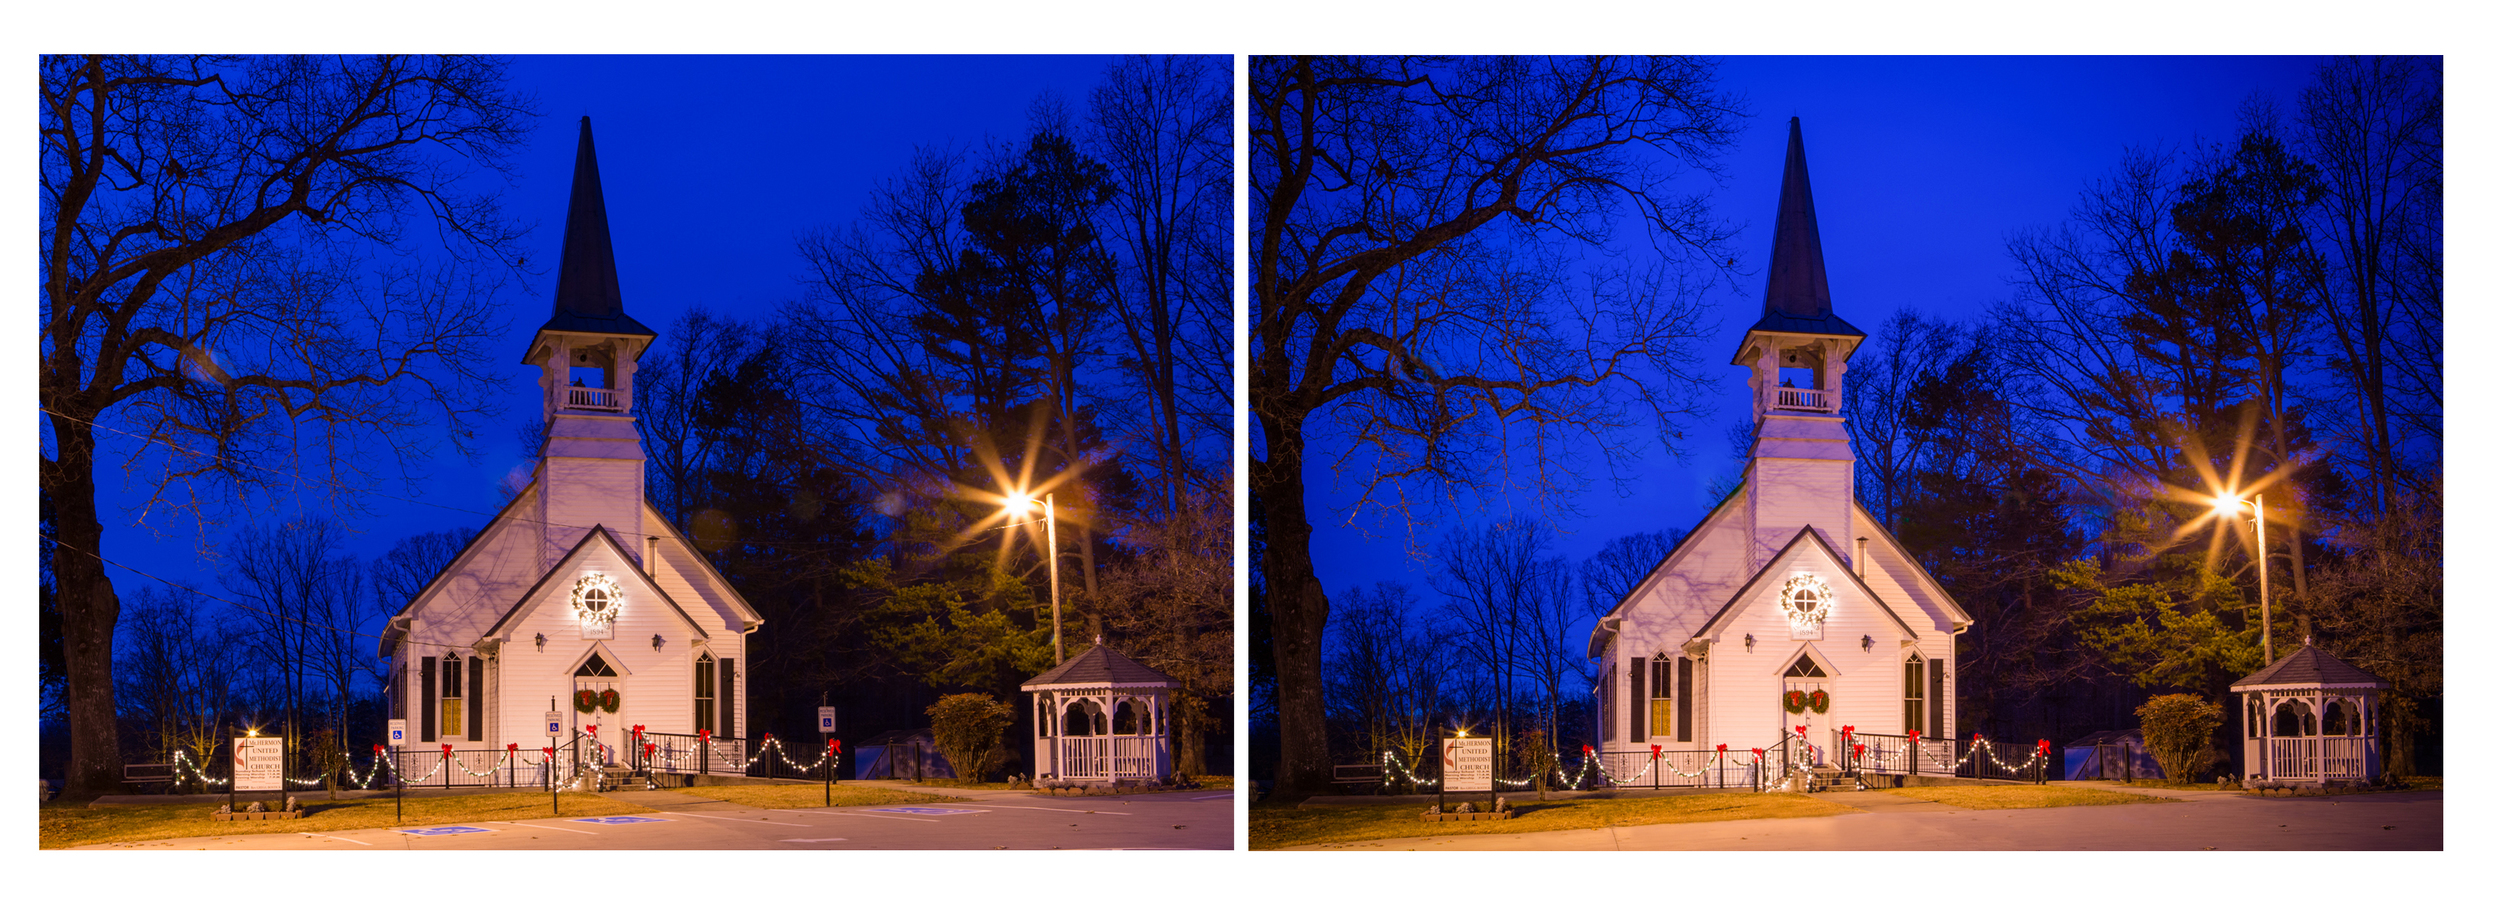 People are not the only ones where retouching can help. Recently, I was commissioned to photograph Mt. Hermon United Methodist Church during the Christmas season and at night. The power lines and handicap parking signs were a distraction that took away from an image of a lovely old country church and were removed via Photoshop.